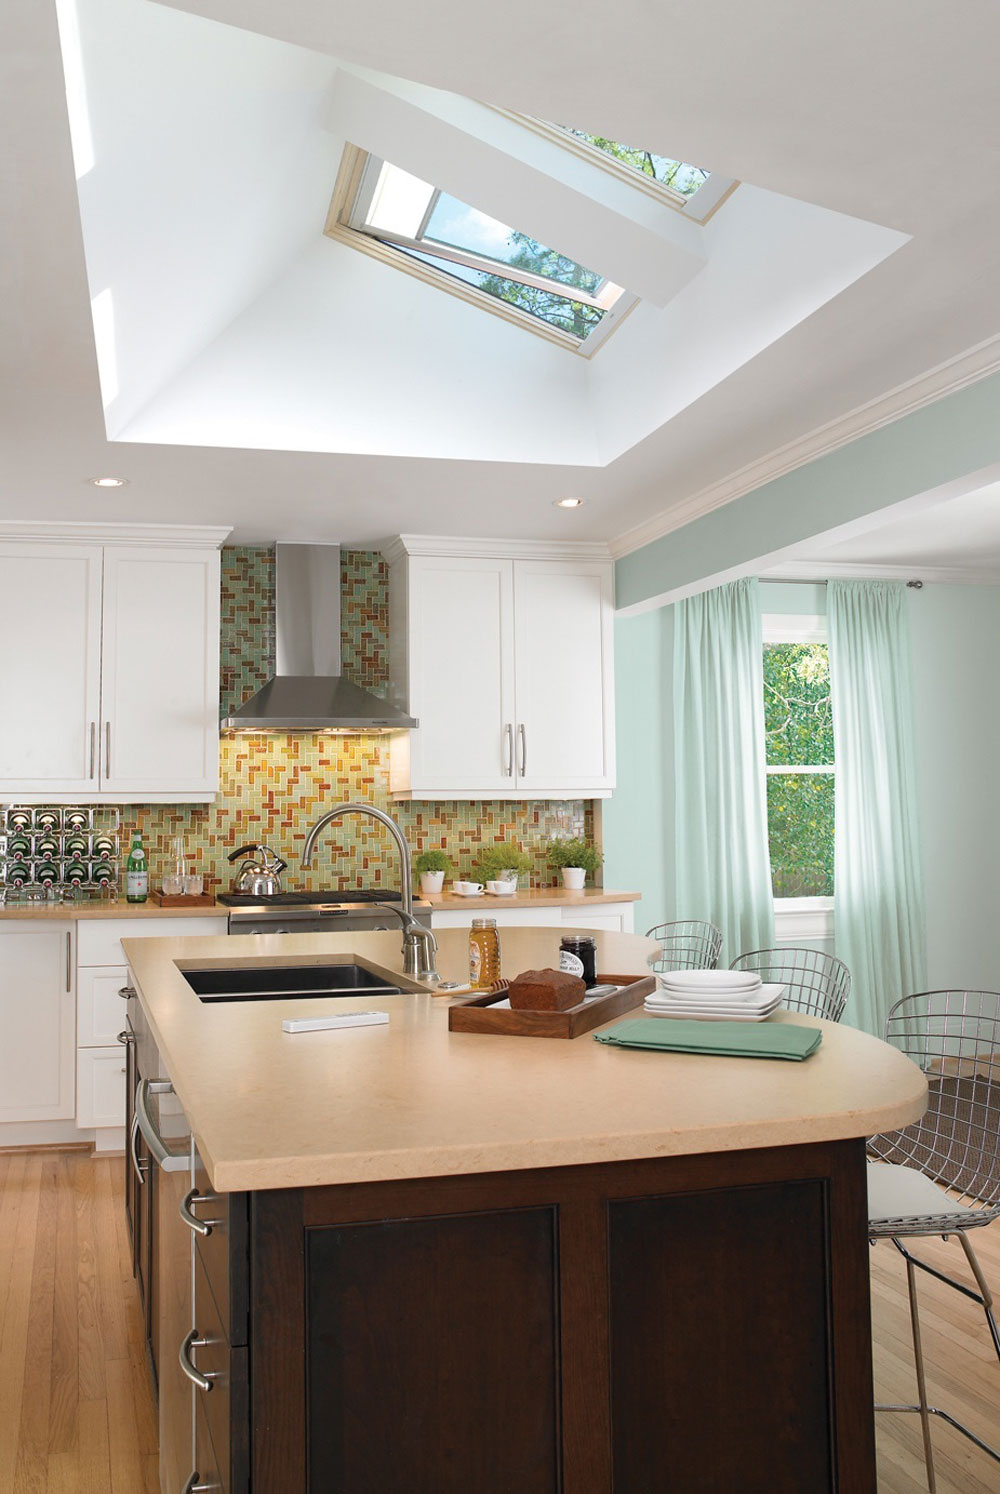 Kitchens with skylights for more natural light 11 kitchens with skylights for more natural light